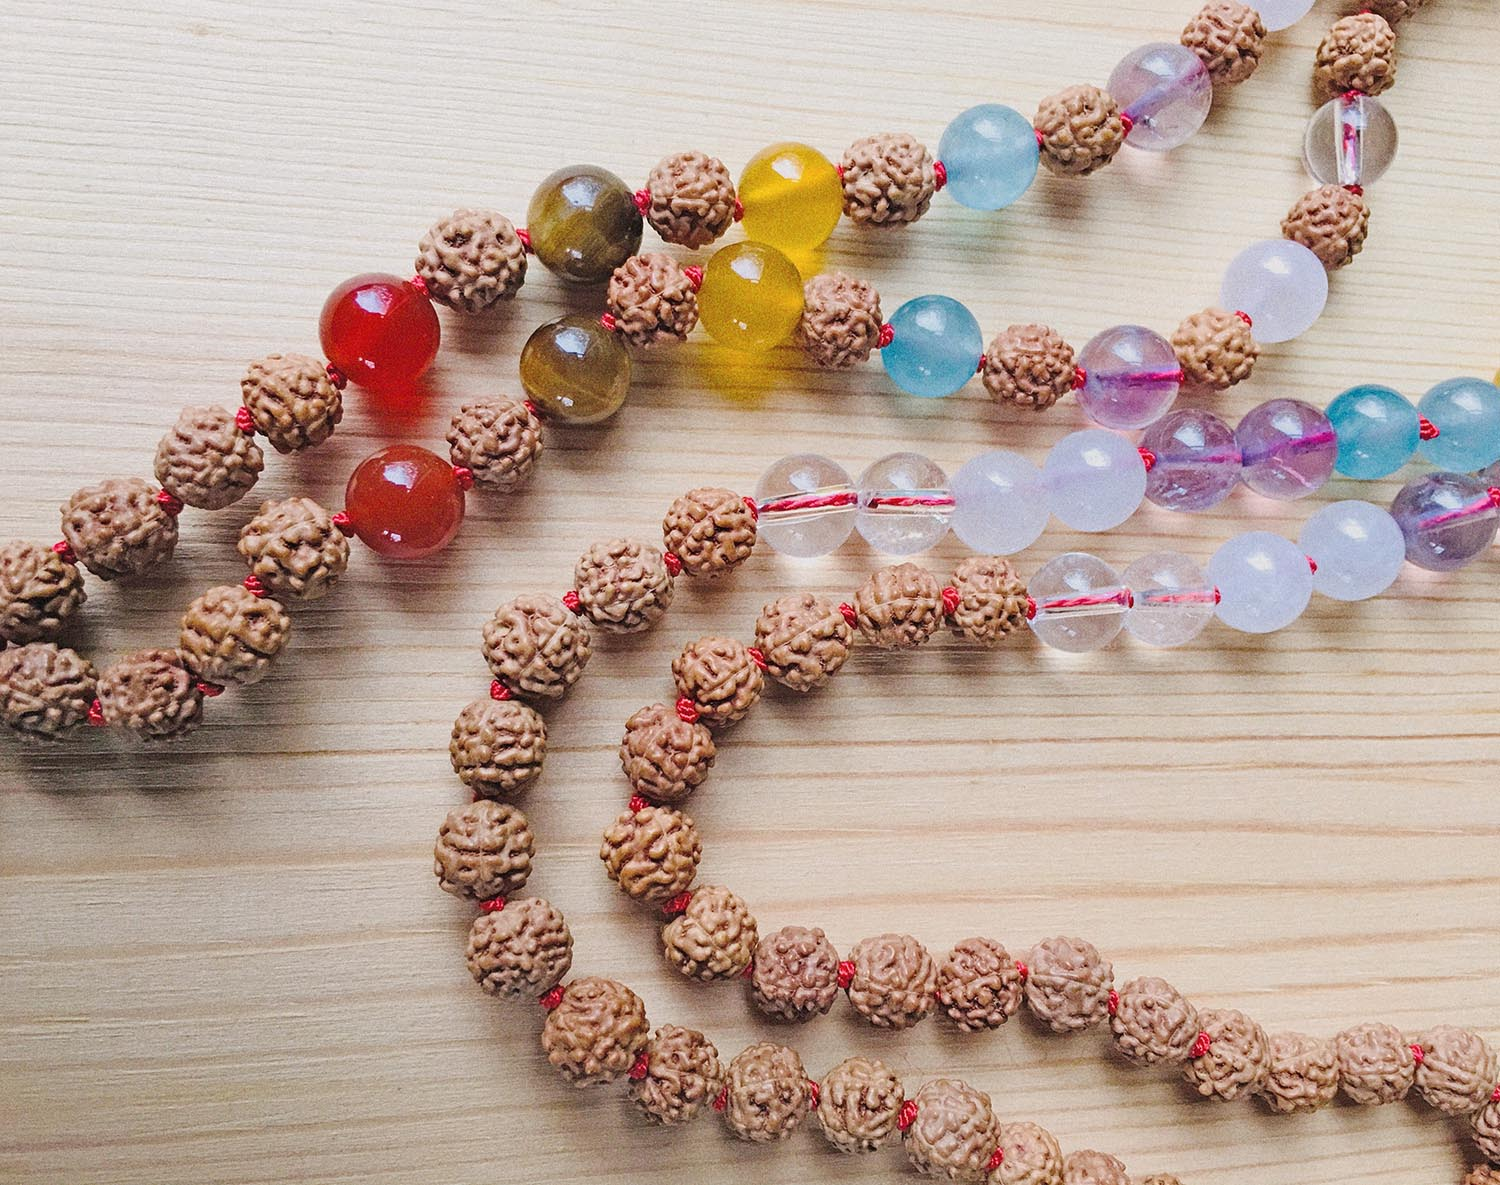 5 Minute Mala Bead Meditation